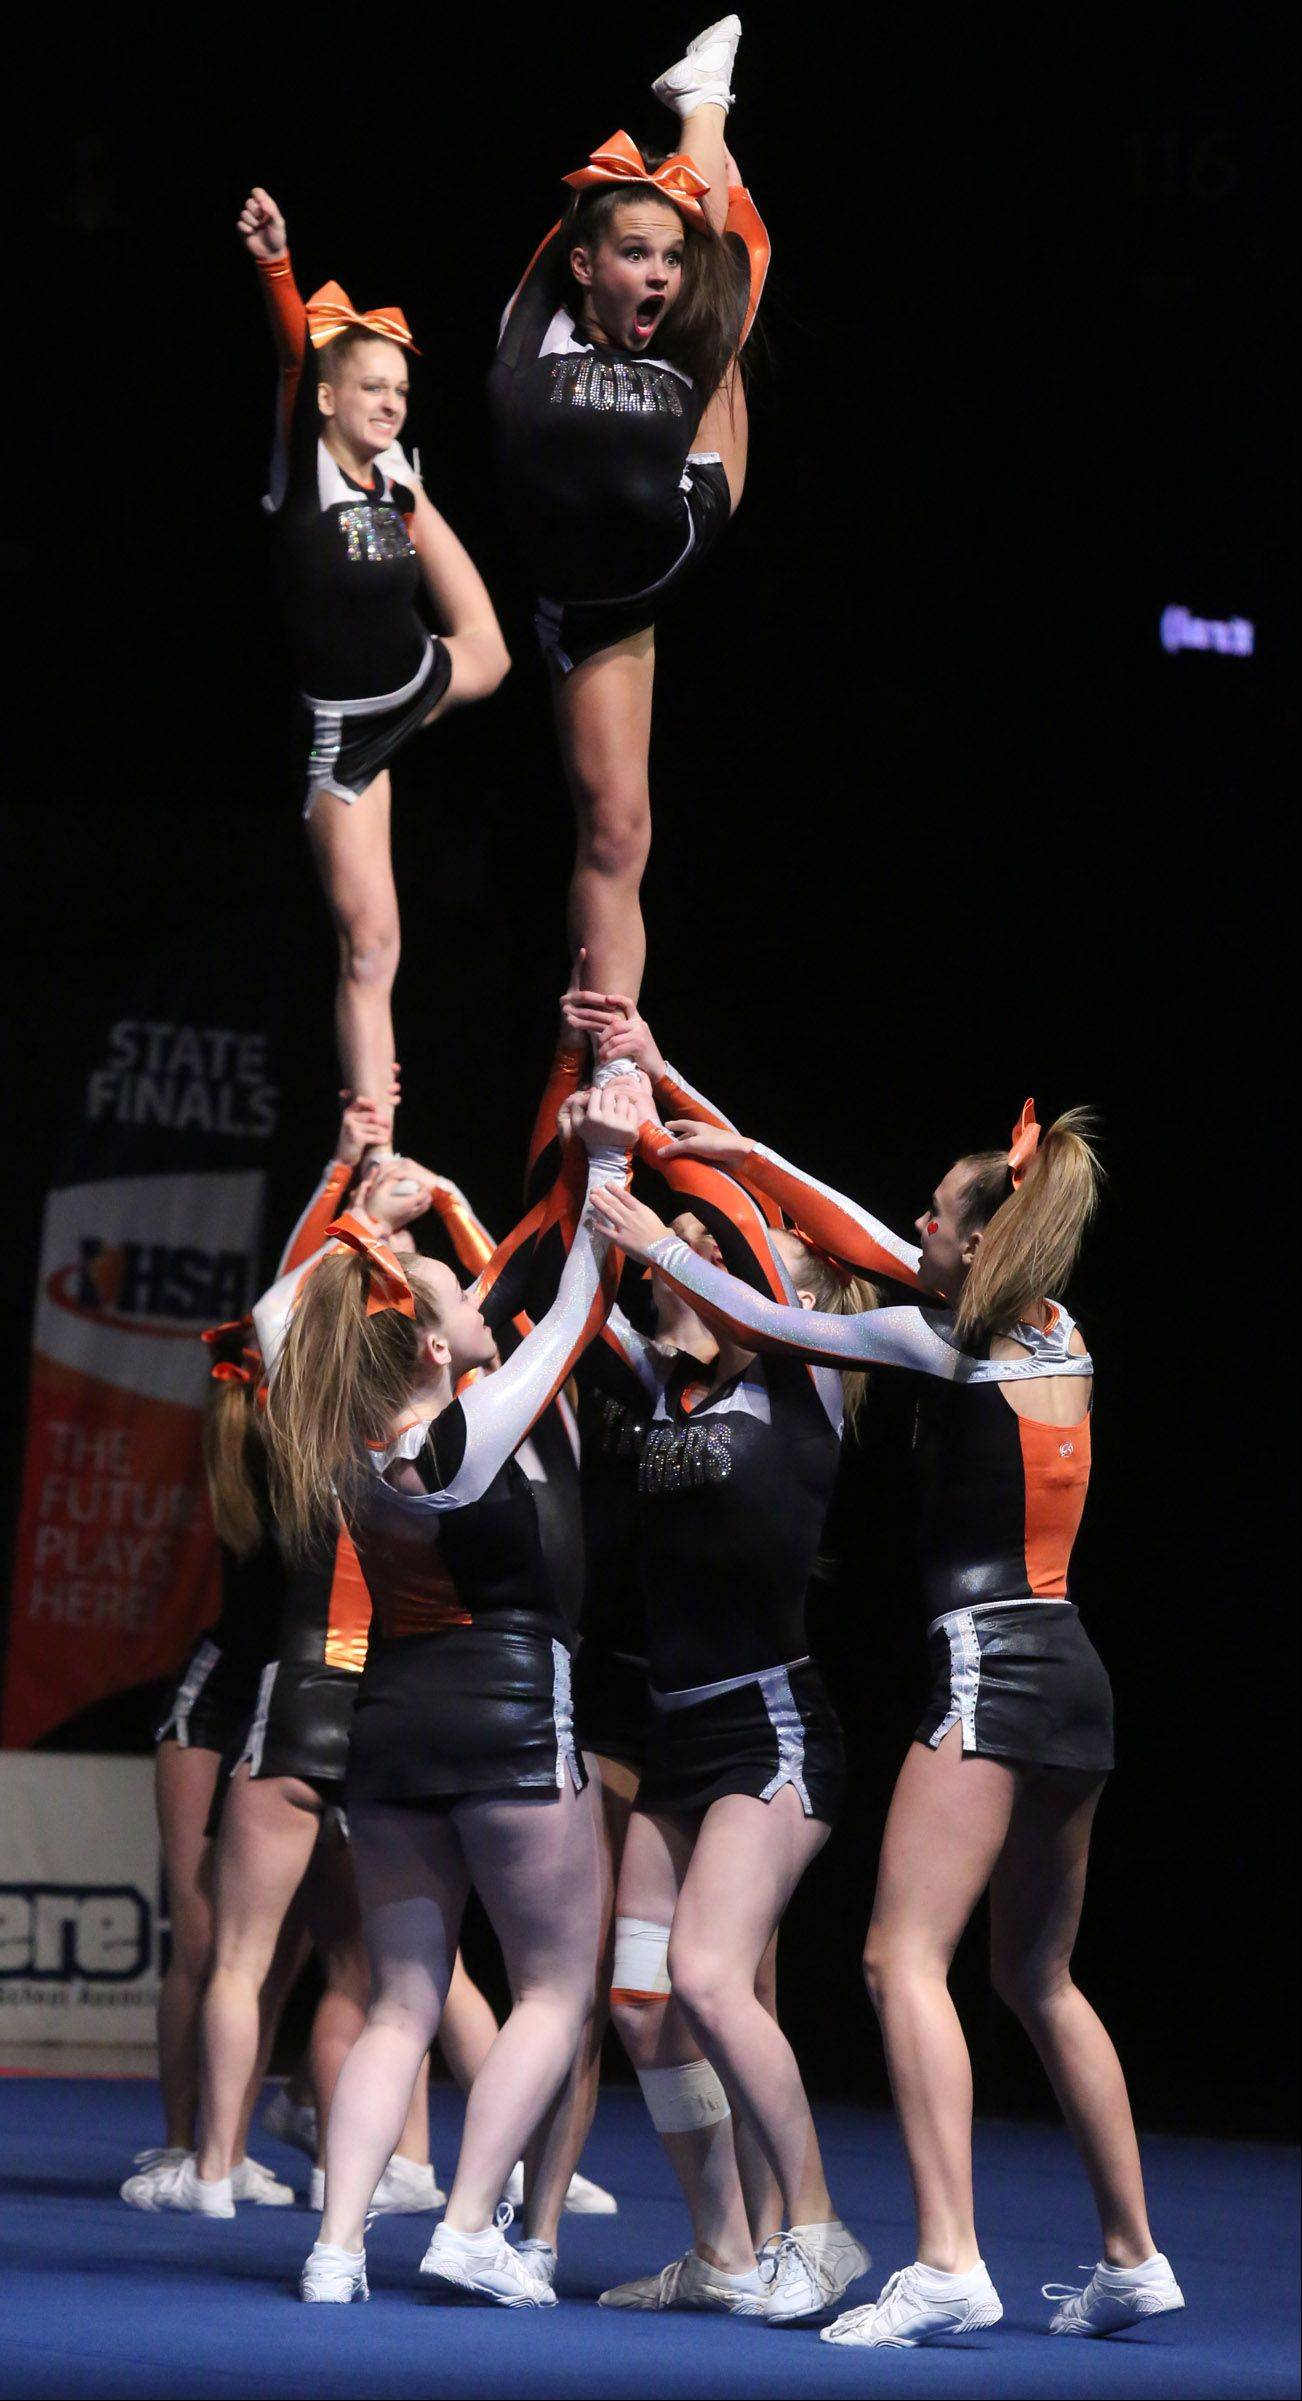 Crystal Lake Central's cheer team performs in the medium team category.